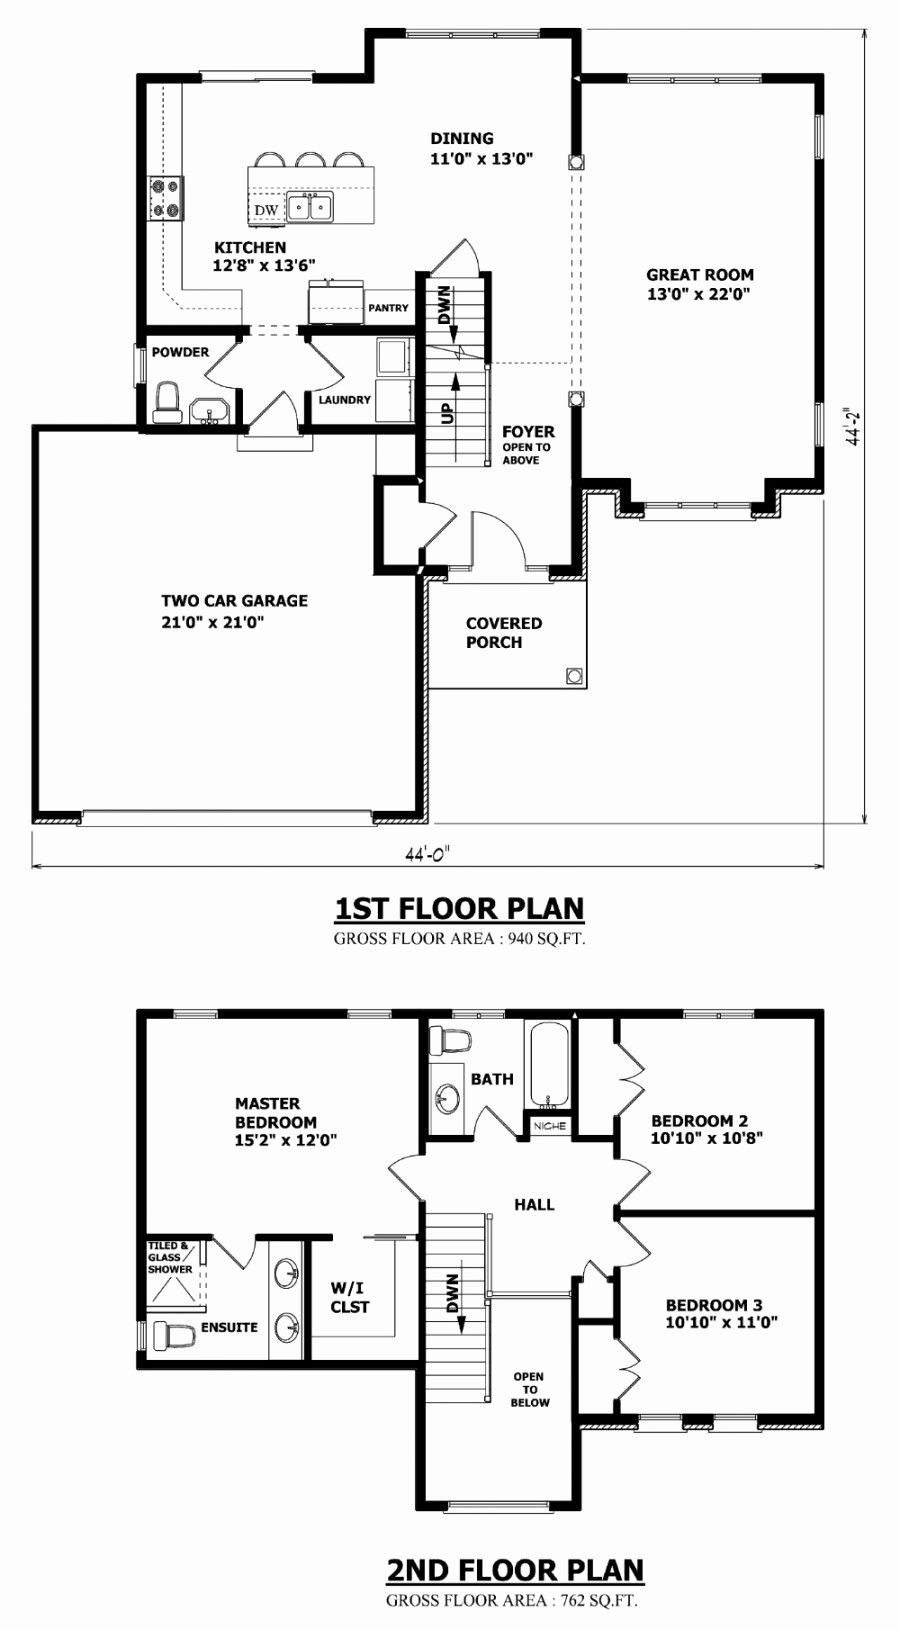 Best 2 Bedroom House Plans New Home Designs Custom House Plans Stock House Plans And In 2020 Double Storey House Plans Two Storey House Plans Two Story House Plans